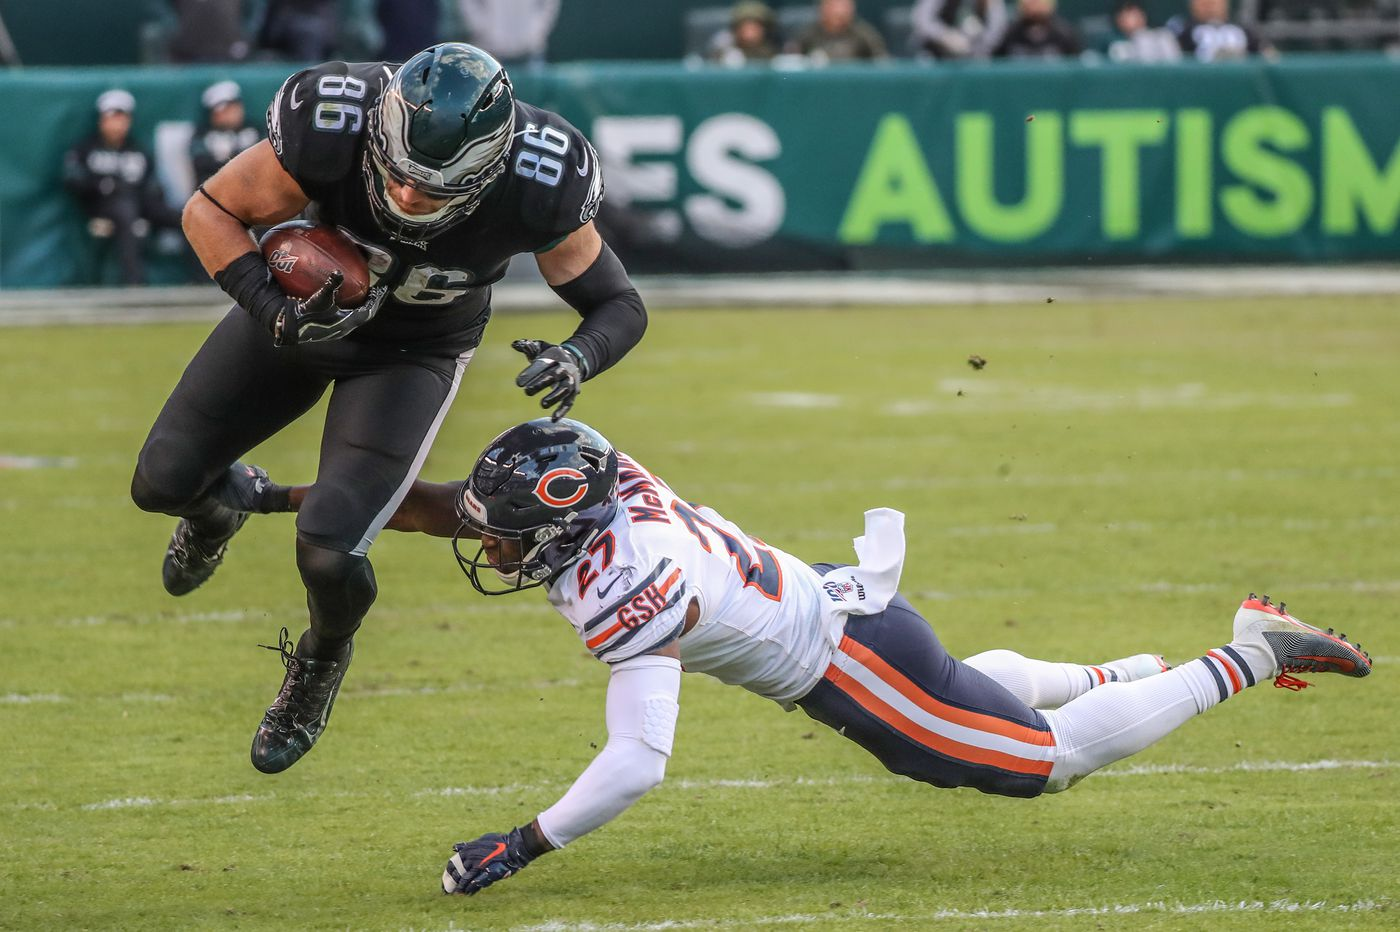 With the Eagles' wide receivers struggling, Zach Ertz has a big performance in win over the Bears